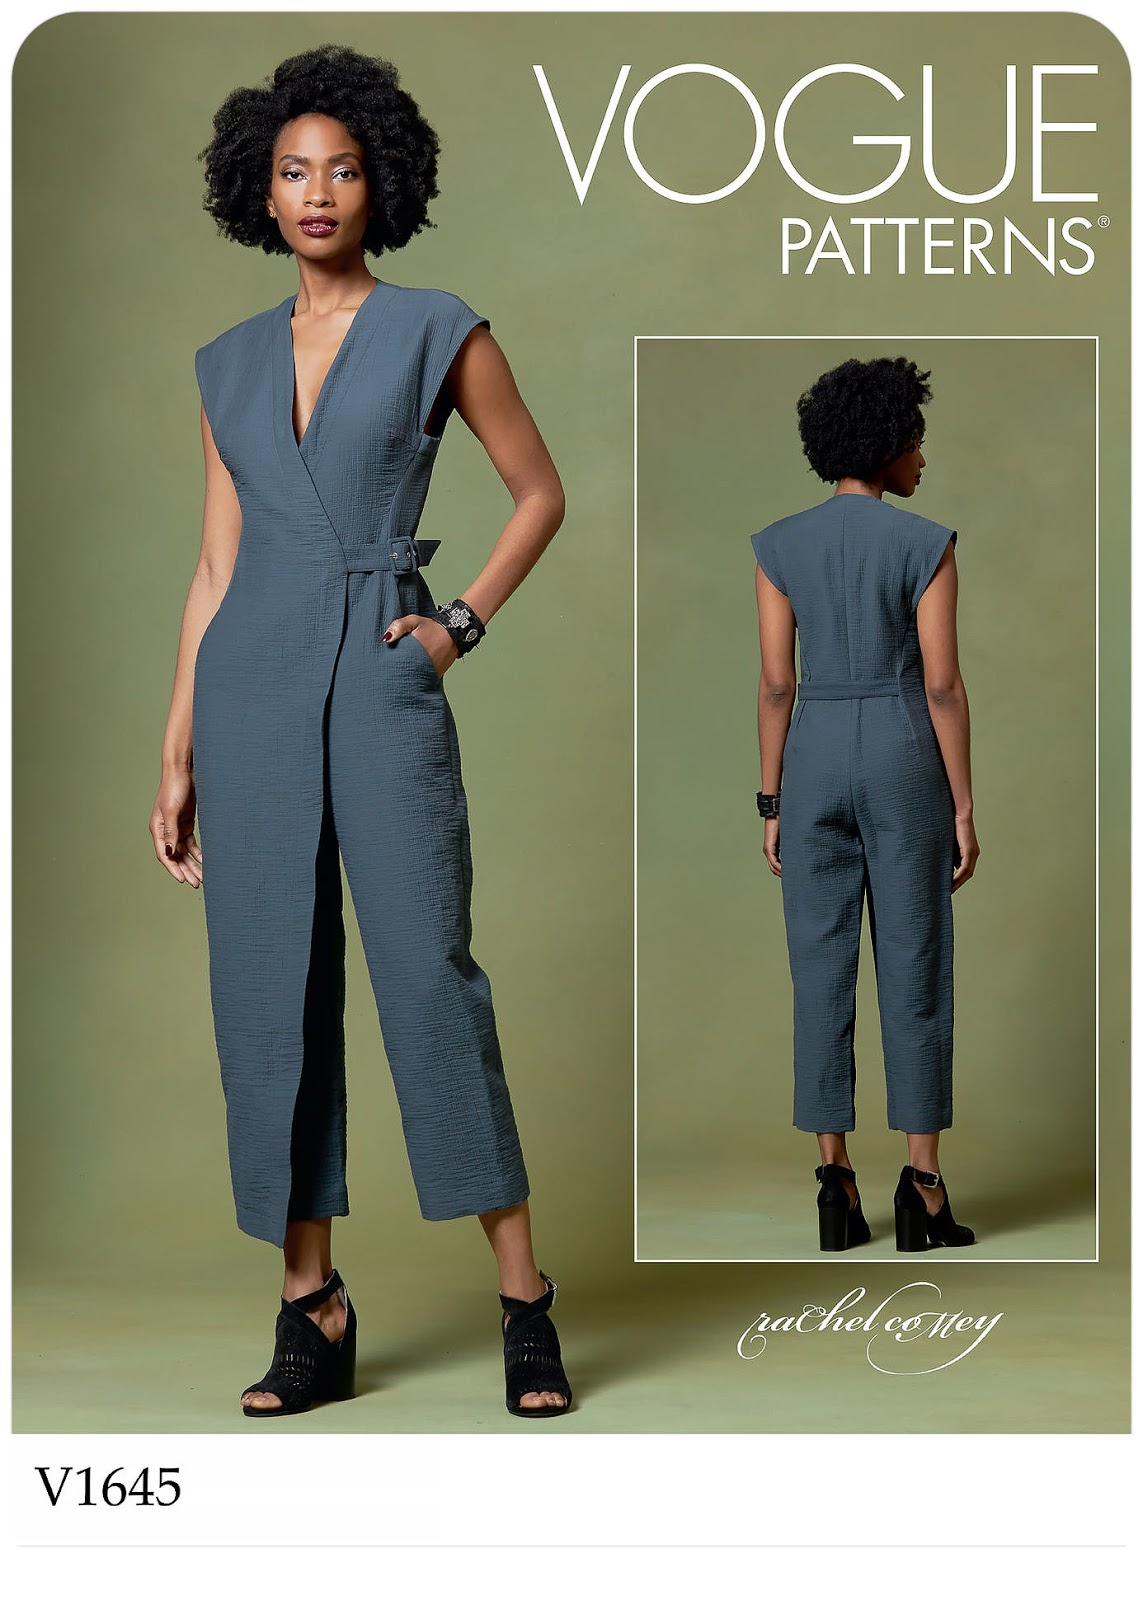 most popular vogue patterns